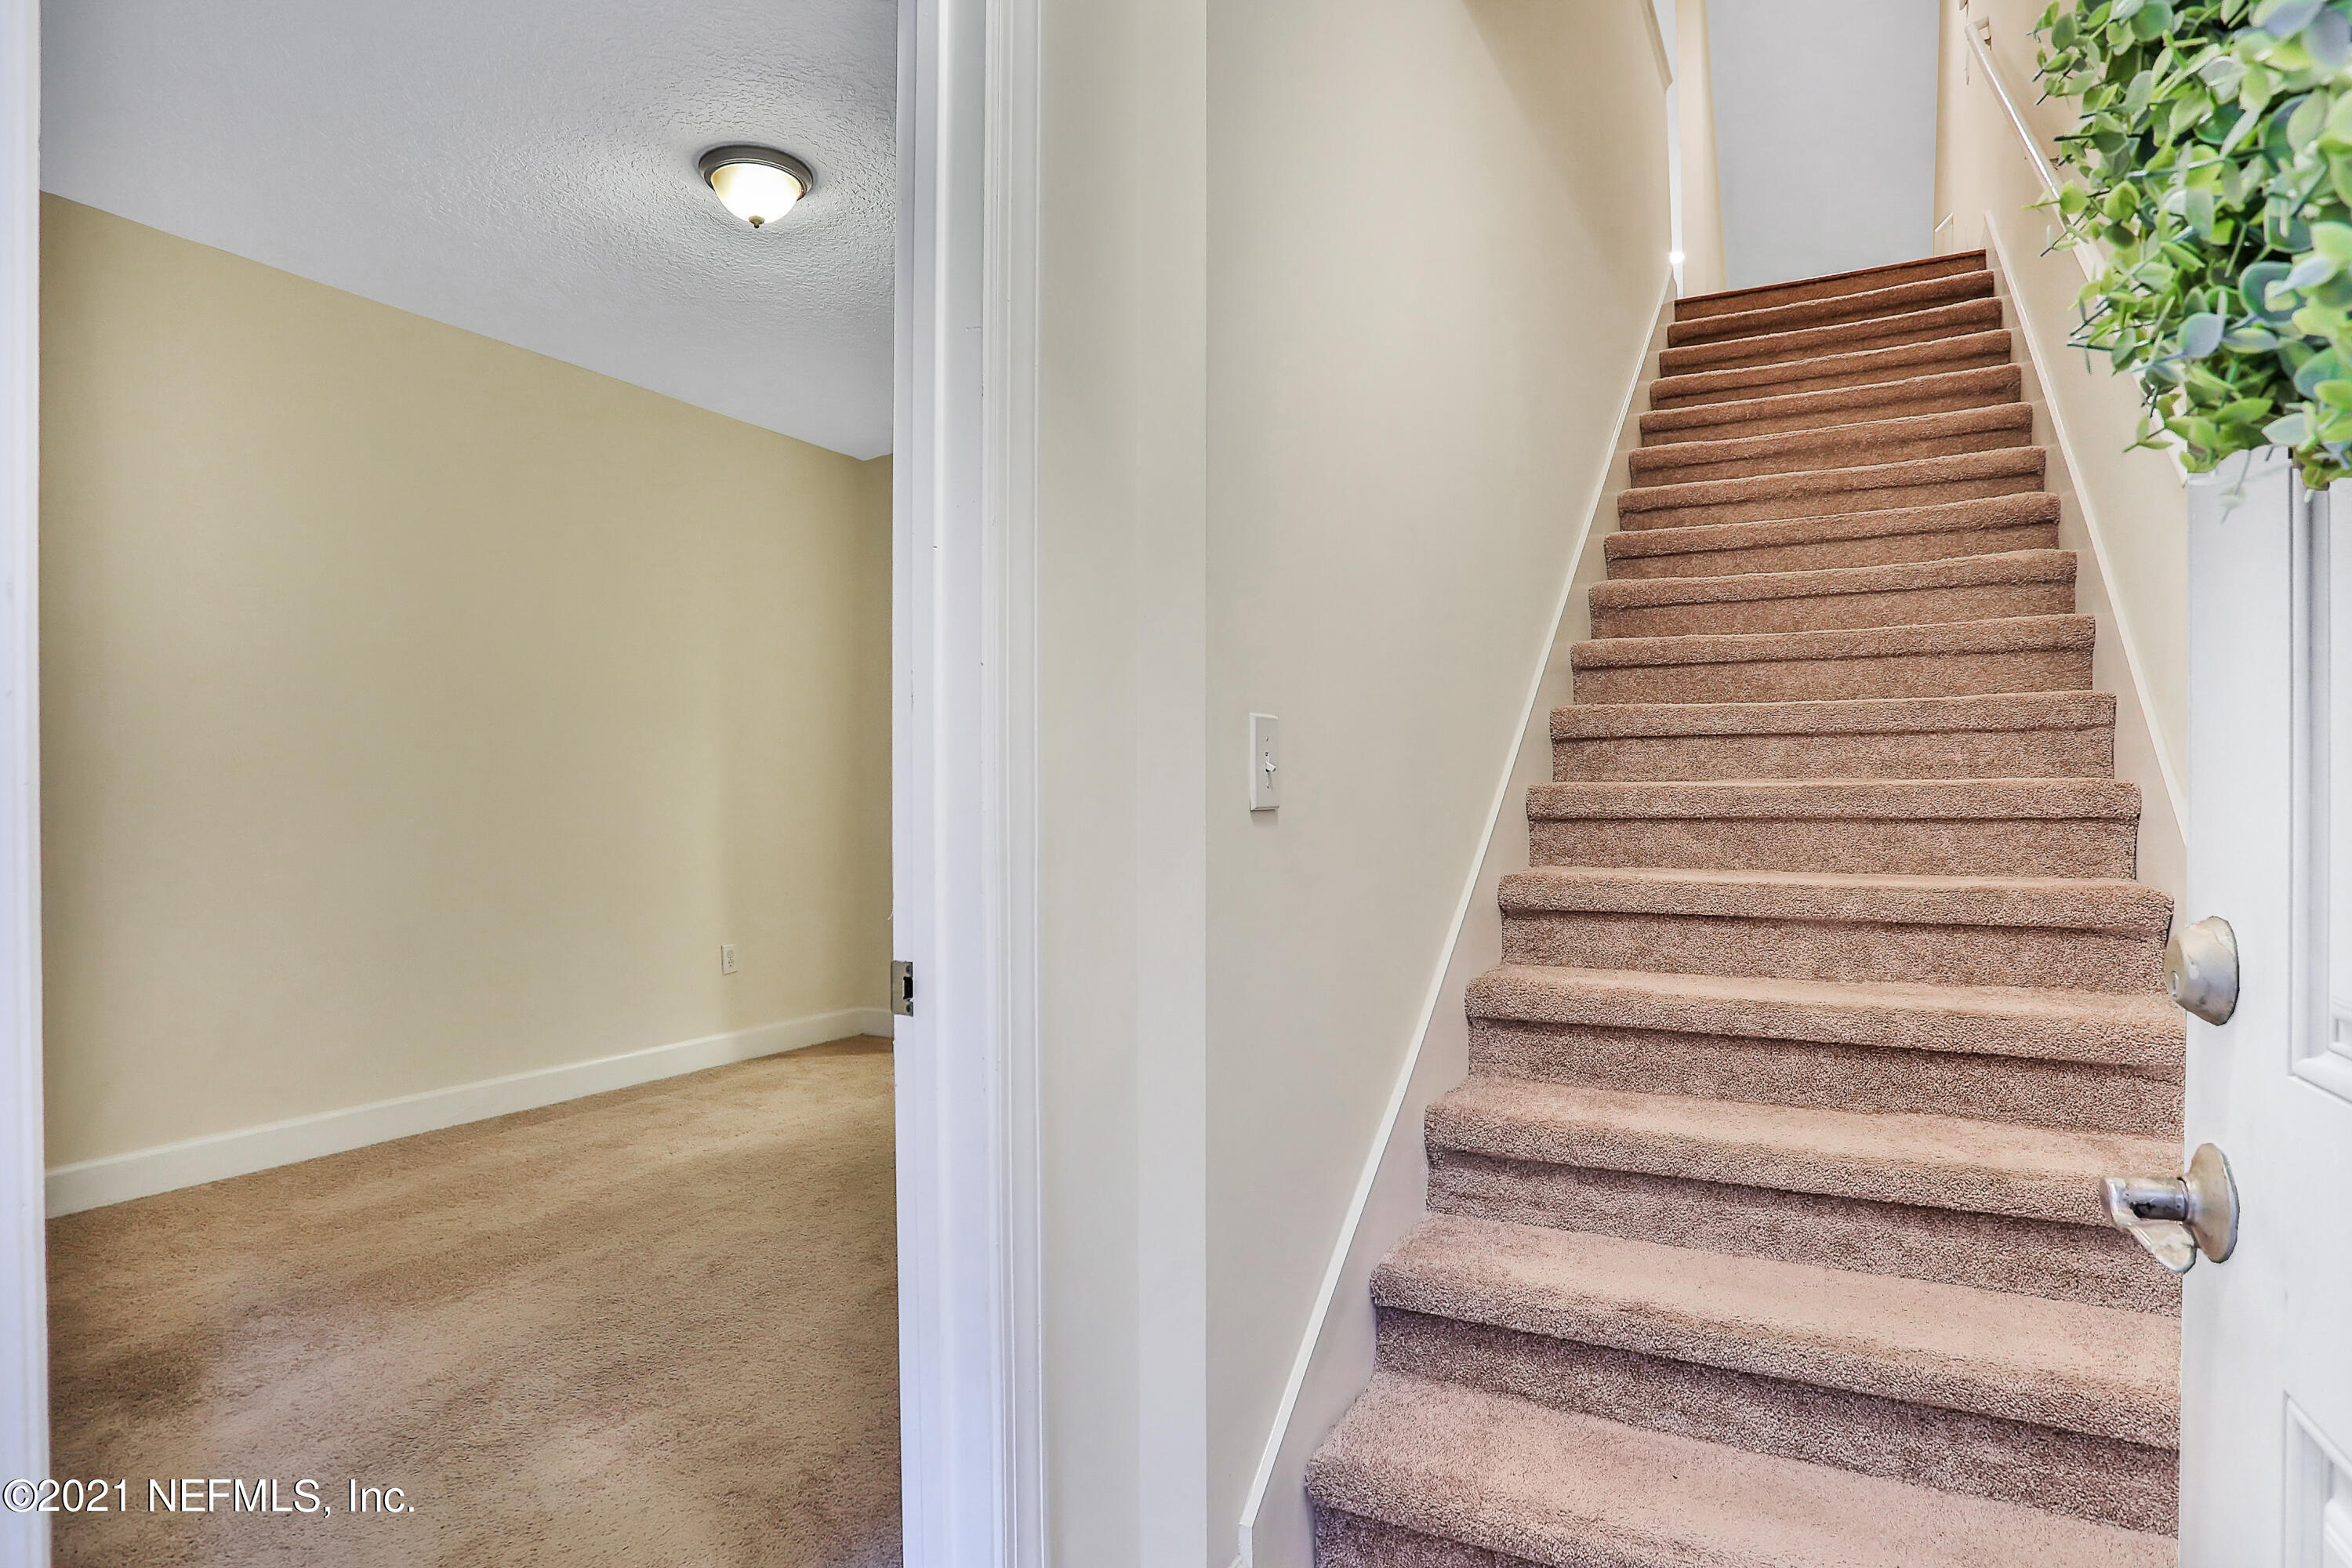 Stairs Entrance & Bedroom Bottom Le